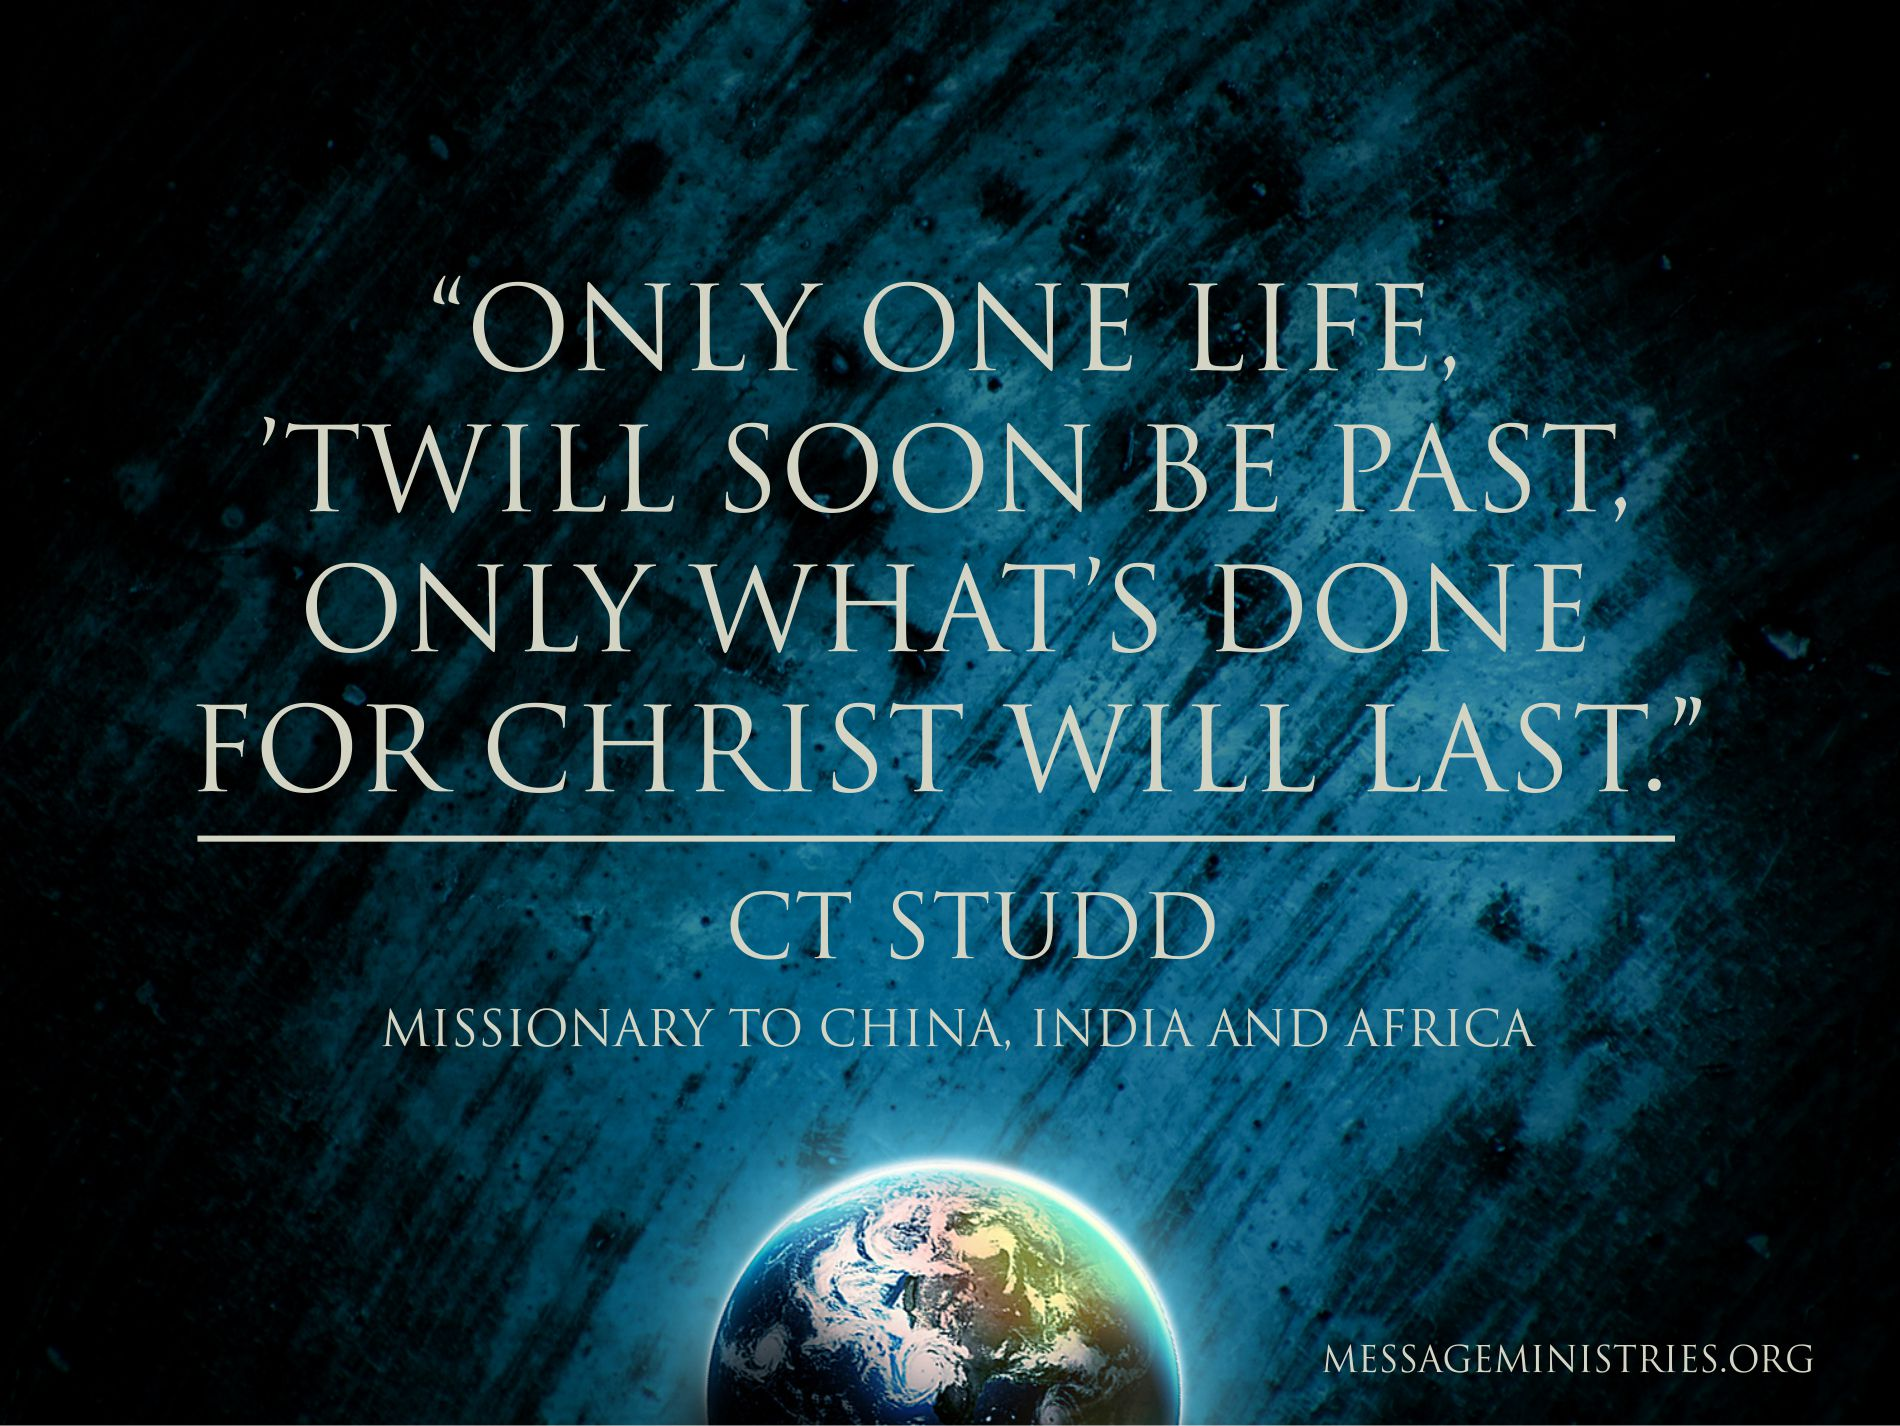 CT Studd Mission Quote